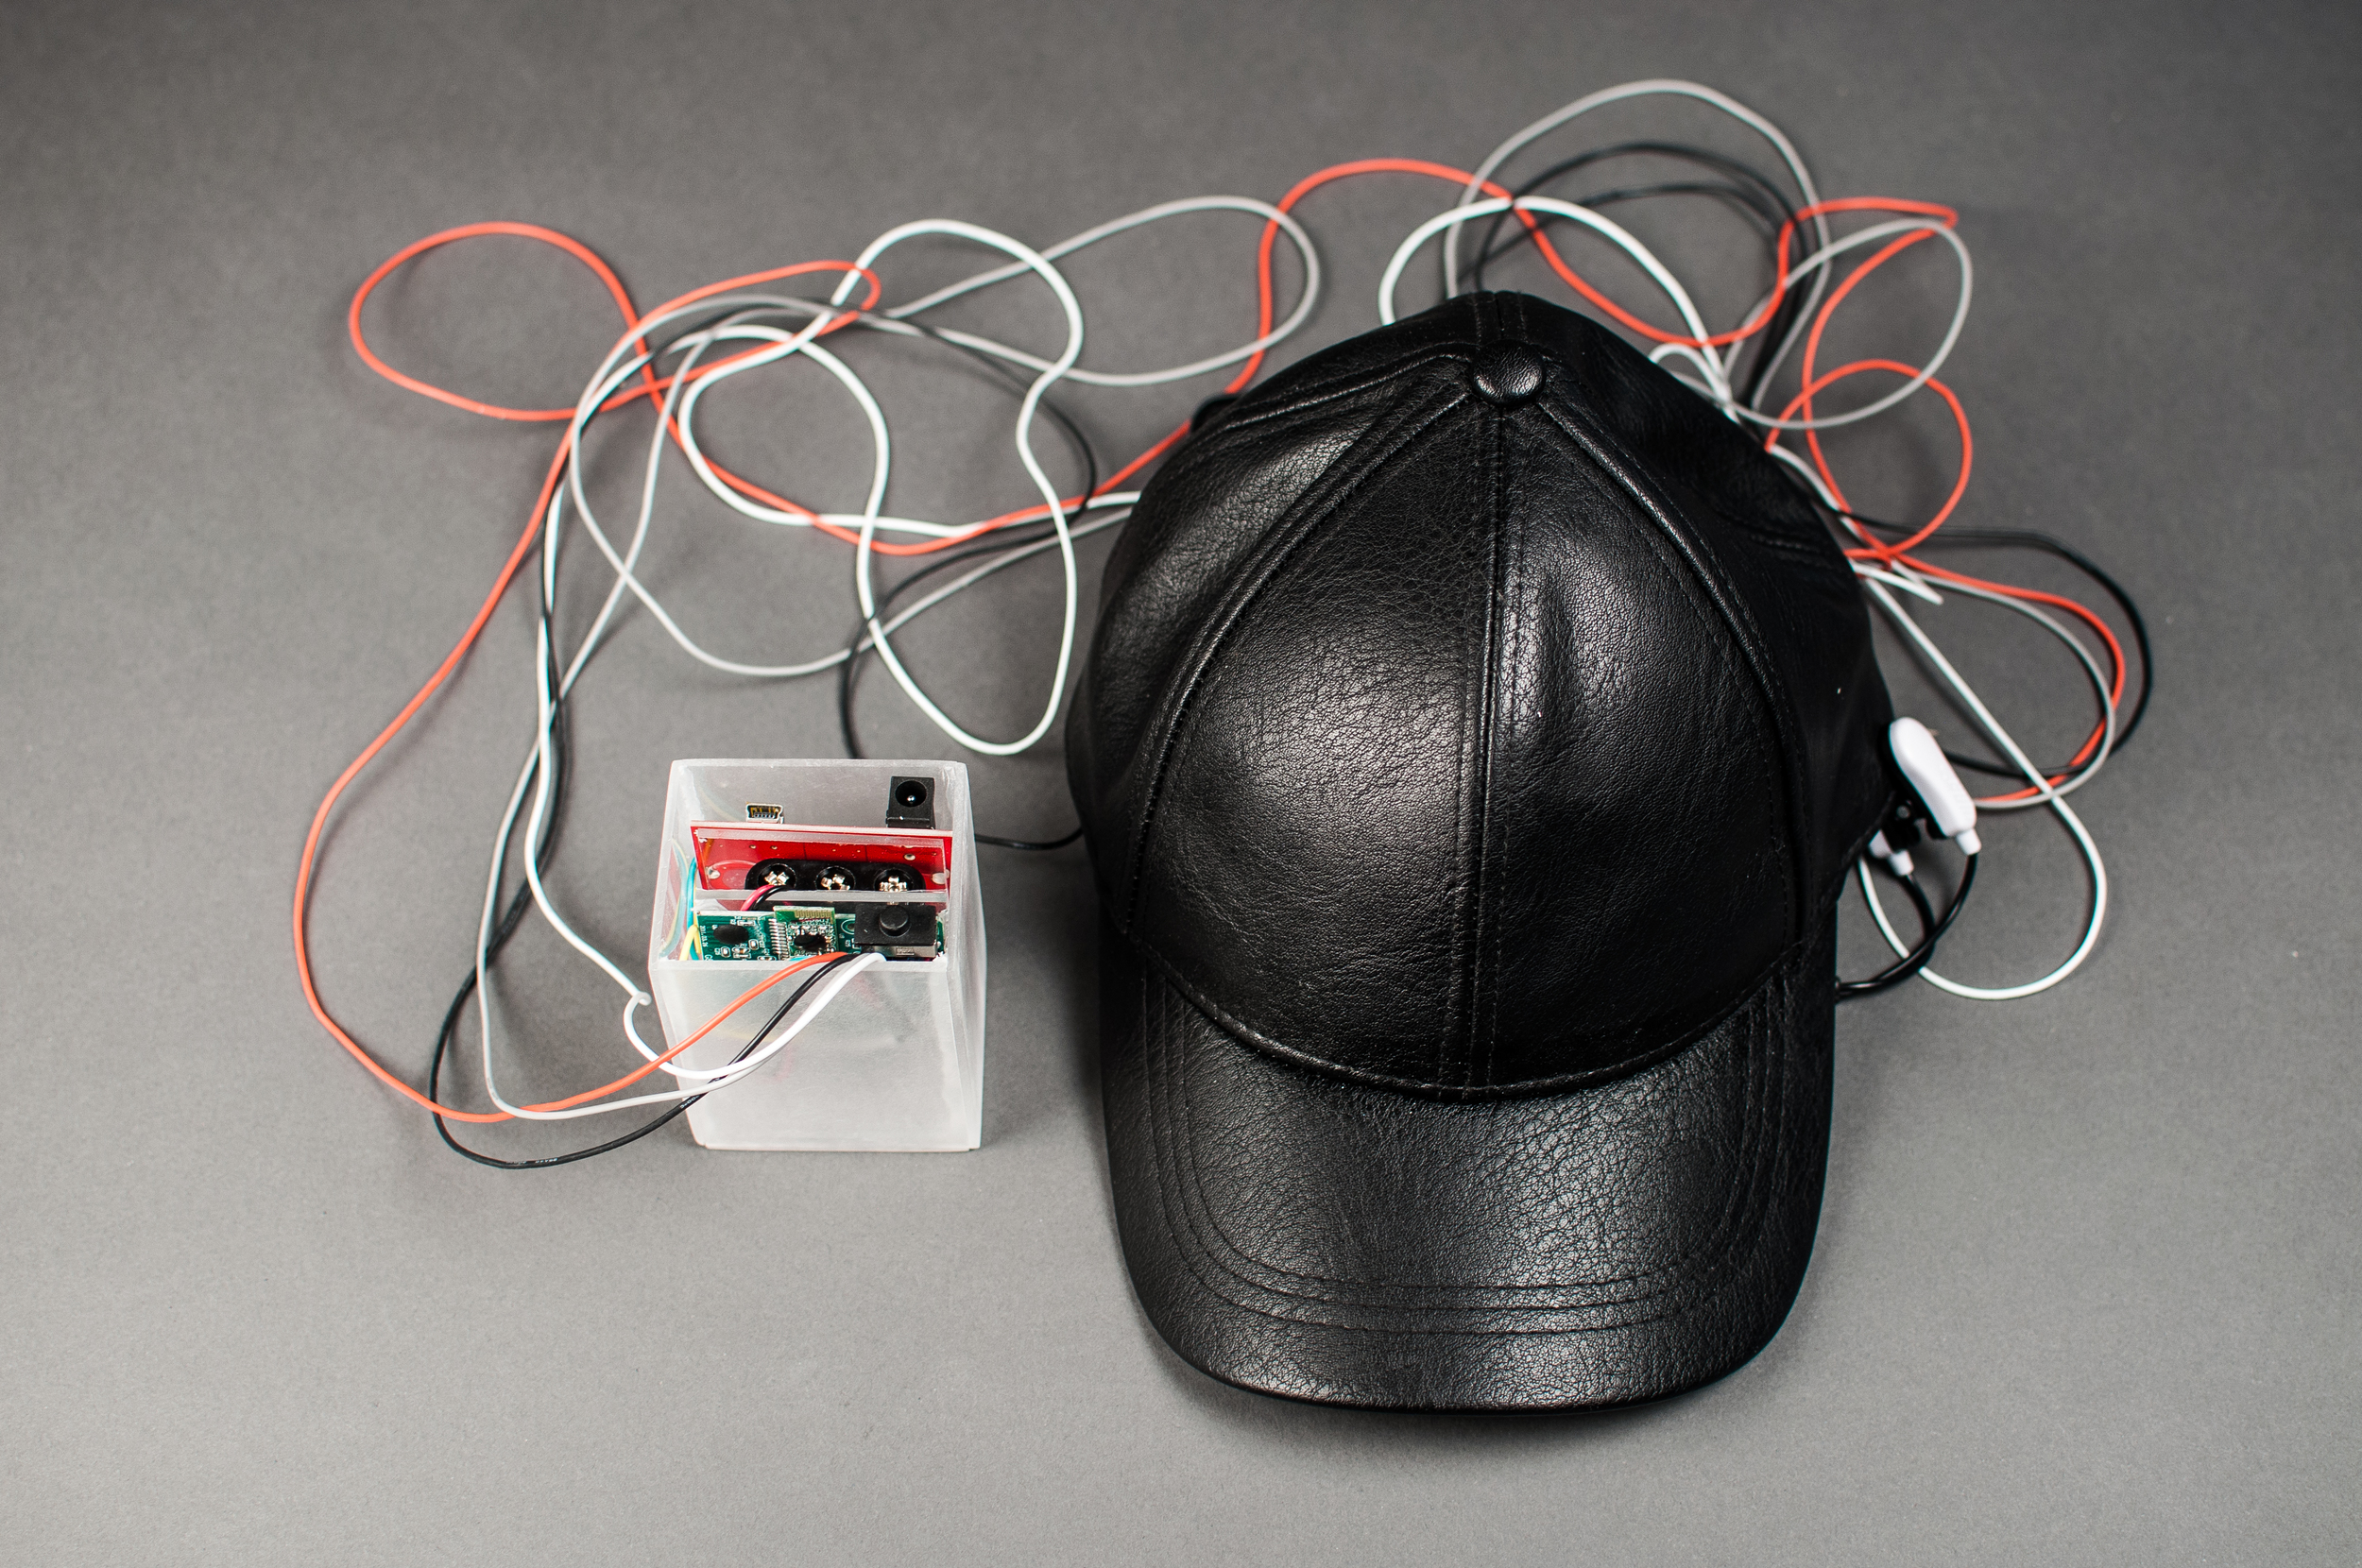 PROSTHETE's hardware: an EEG sensor is embedded in the cap; a hacked Neurosky chip sends serial data to an Arduino clone board which then parses the signal and sends it to an attached laptop.